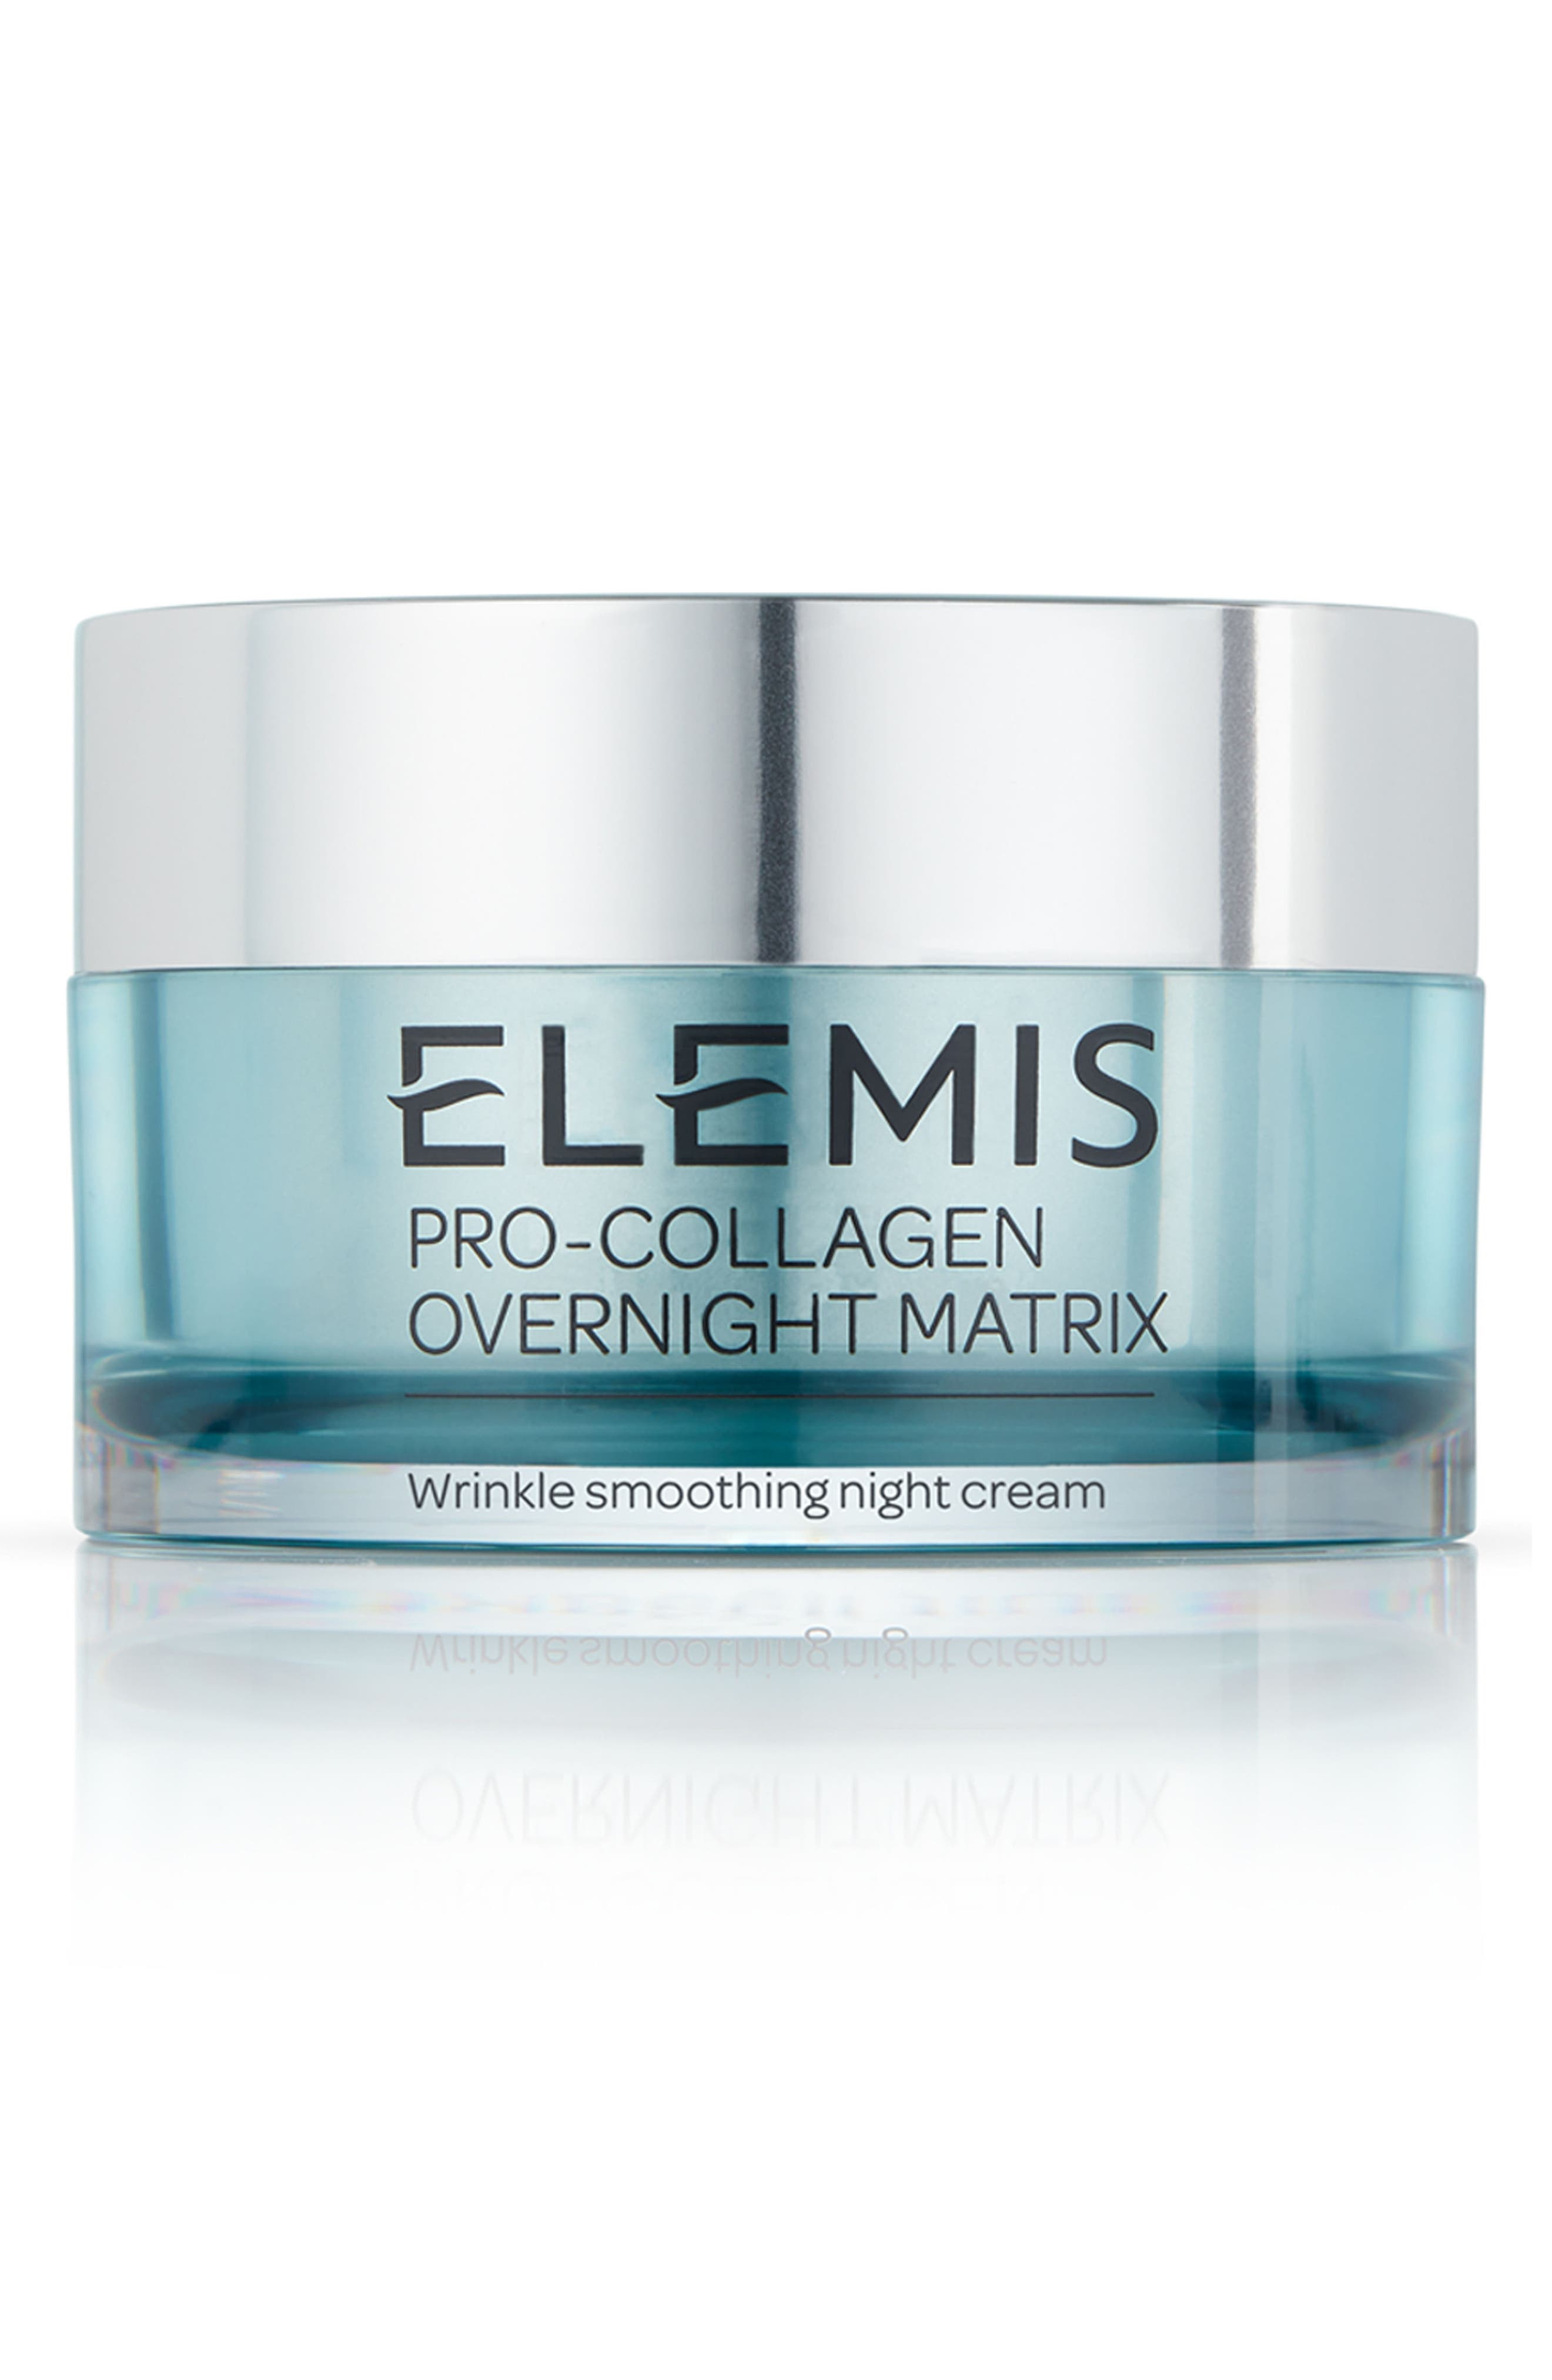 Pro-Collagen Overnight Matrix,                             Main thumbnail 1, color,                             No Color